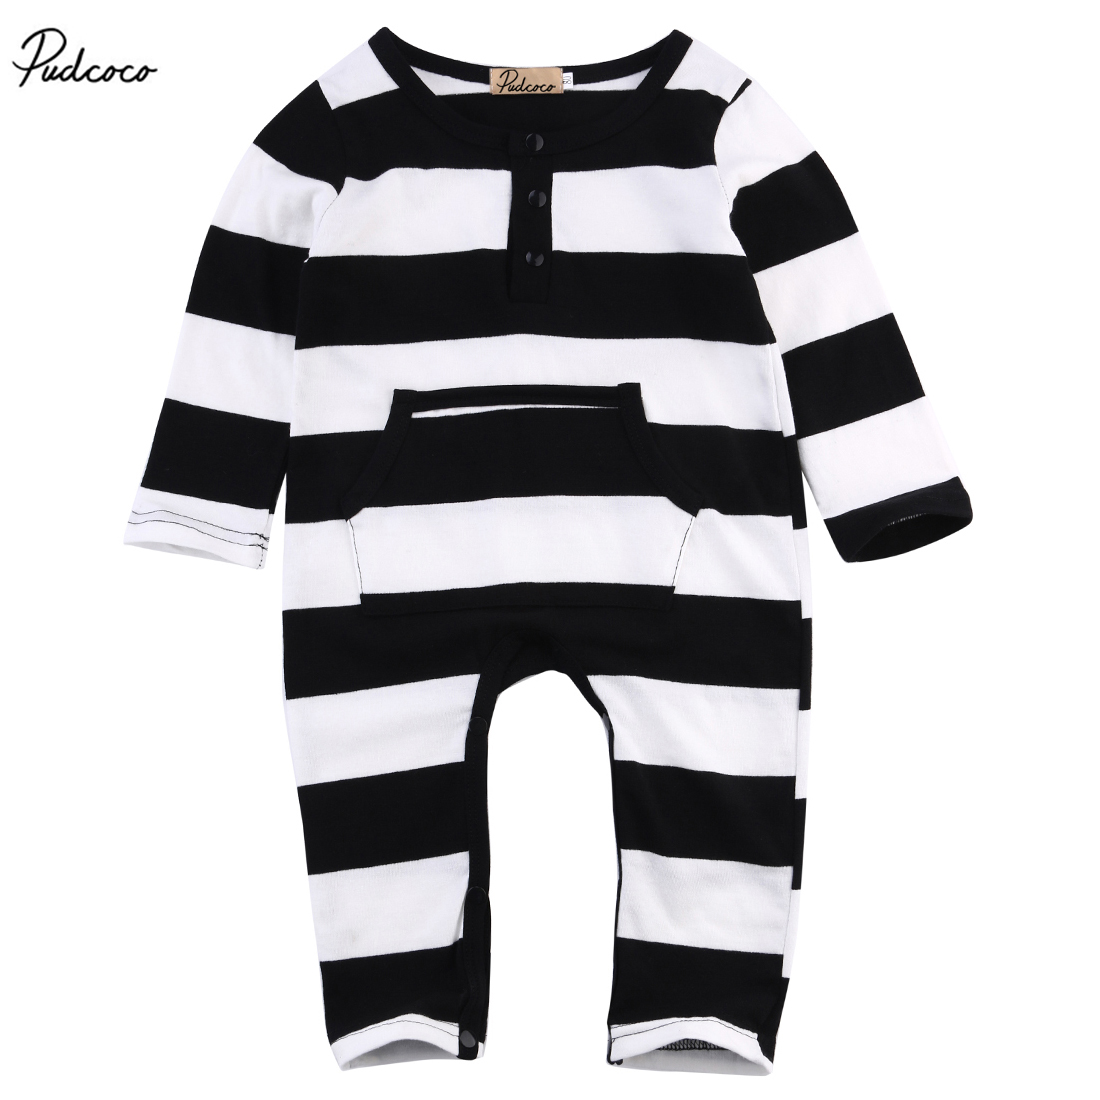 Cute Kids Baby Boys Girls Long Sleeve Striped Romper Cotton Large Pocket Jumpsuit Newborn Clothes Outfits 0-3Y puseky 2017 infant romper baby boys girls jumpsuit newborn bebe clothing hooded toddler baby clothes cute panda romper costumes